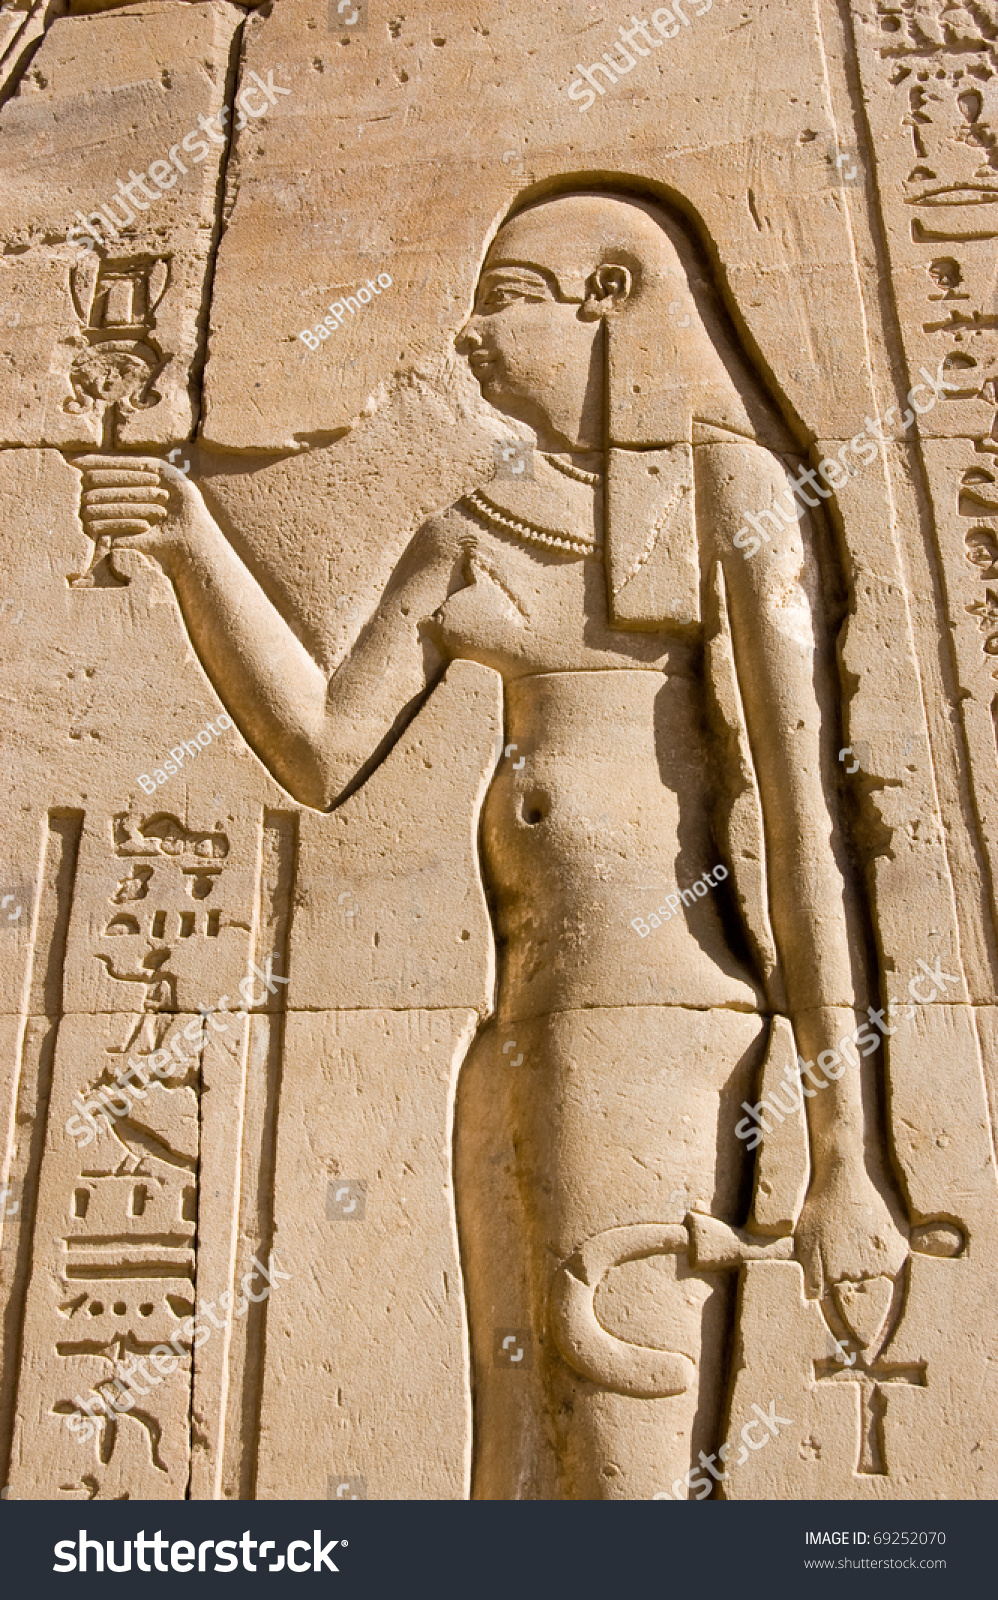 Carving ancient egyptian queen cleopatra wall stock photo